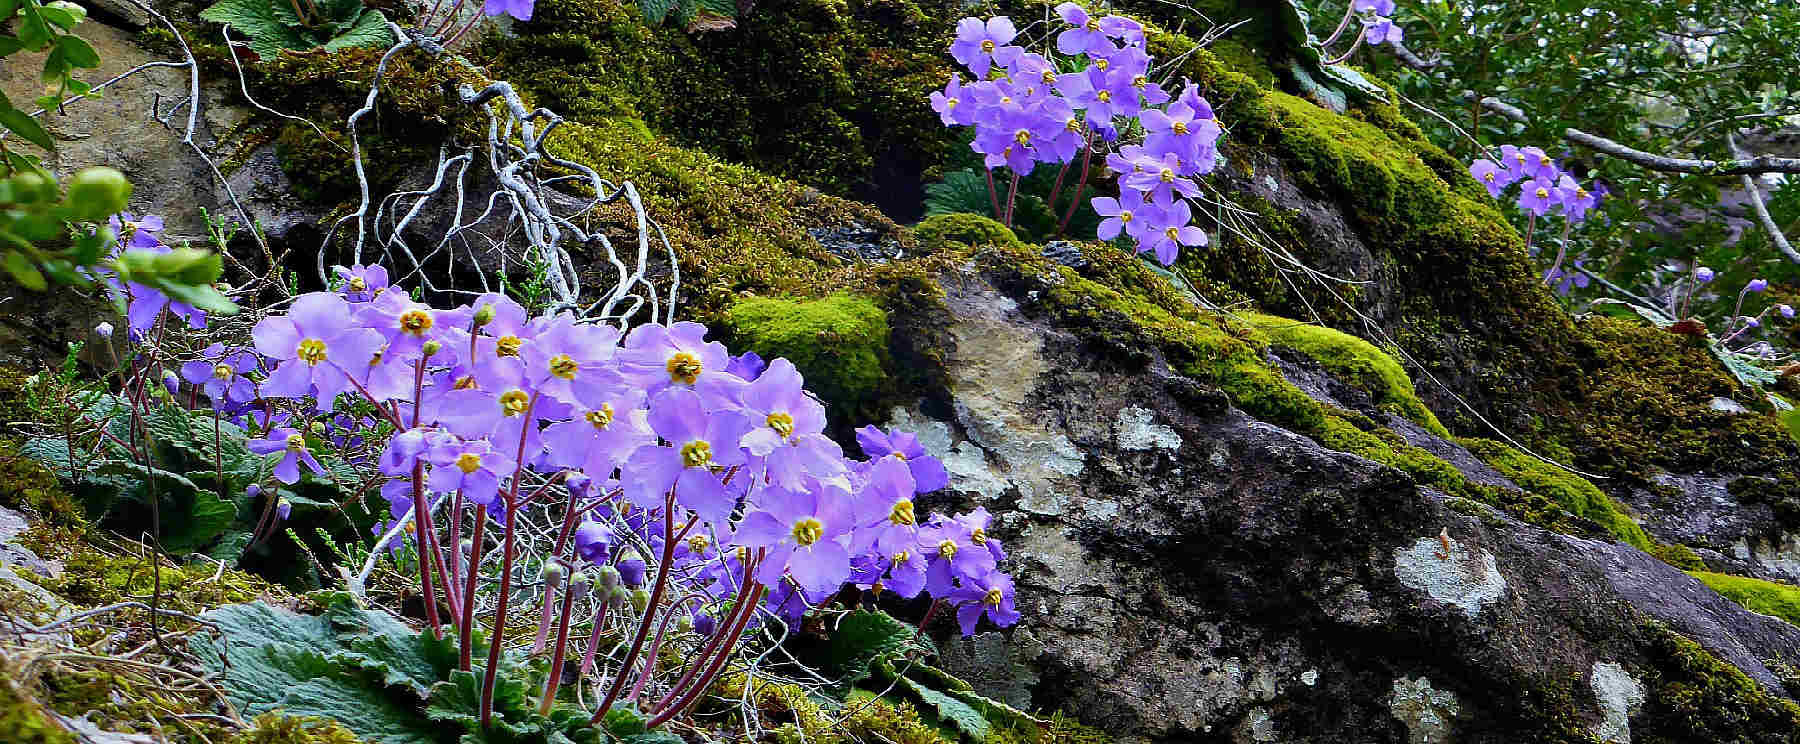 A rocky bank covered in Pyrenean Violets on our Wildlife Walking Holidays Spain